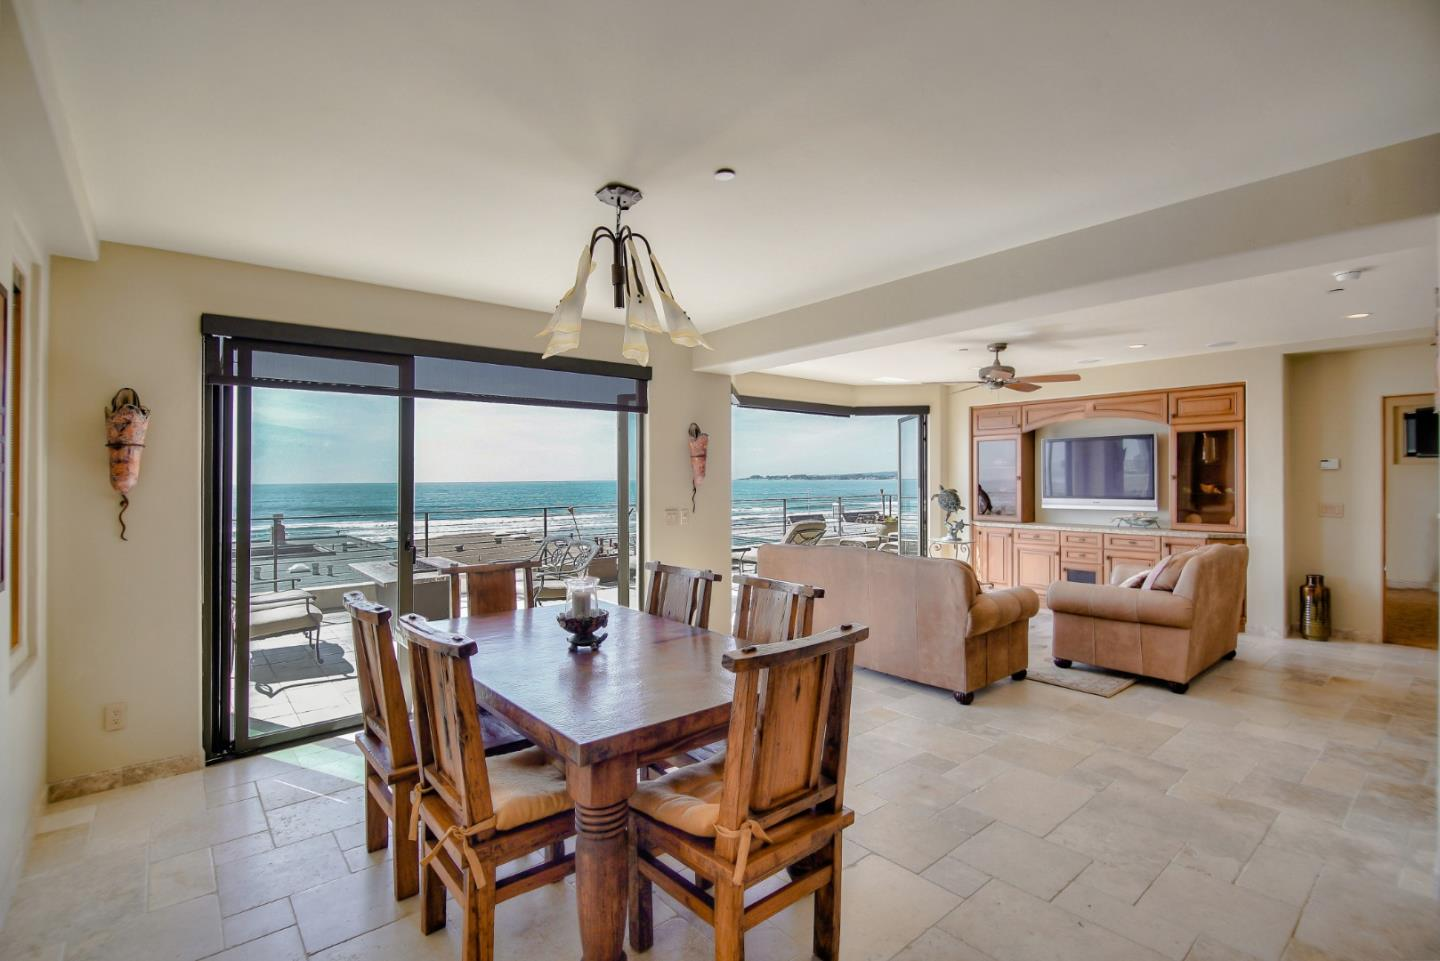 Stunning ocean views from every room! This one-of-a-kind beach home is located in a highly-desired gated beach community just steps away from Rio Del Mar Beach. The home was built in 2007, by an owner/builder, and shows top-of-the-line design & quality. The home features 2 master suites - one with a dual see through fireplace, over-sized tub, and walk in closet. There's a family room on the 2nd level and a living room on the 3rd level. Also on the 3rd level is the chef's kitchen, dining bar, and dining room, all overlooking the beautiful blue ocean. Plus the home features two separate 1-car garages and plenty of off street parking for friends and family. THIS IS A MUST SEE!